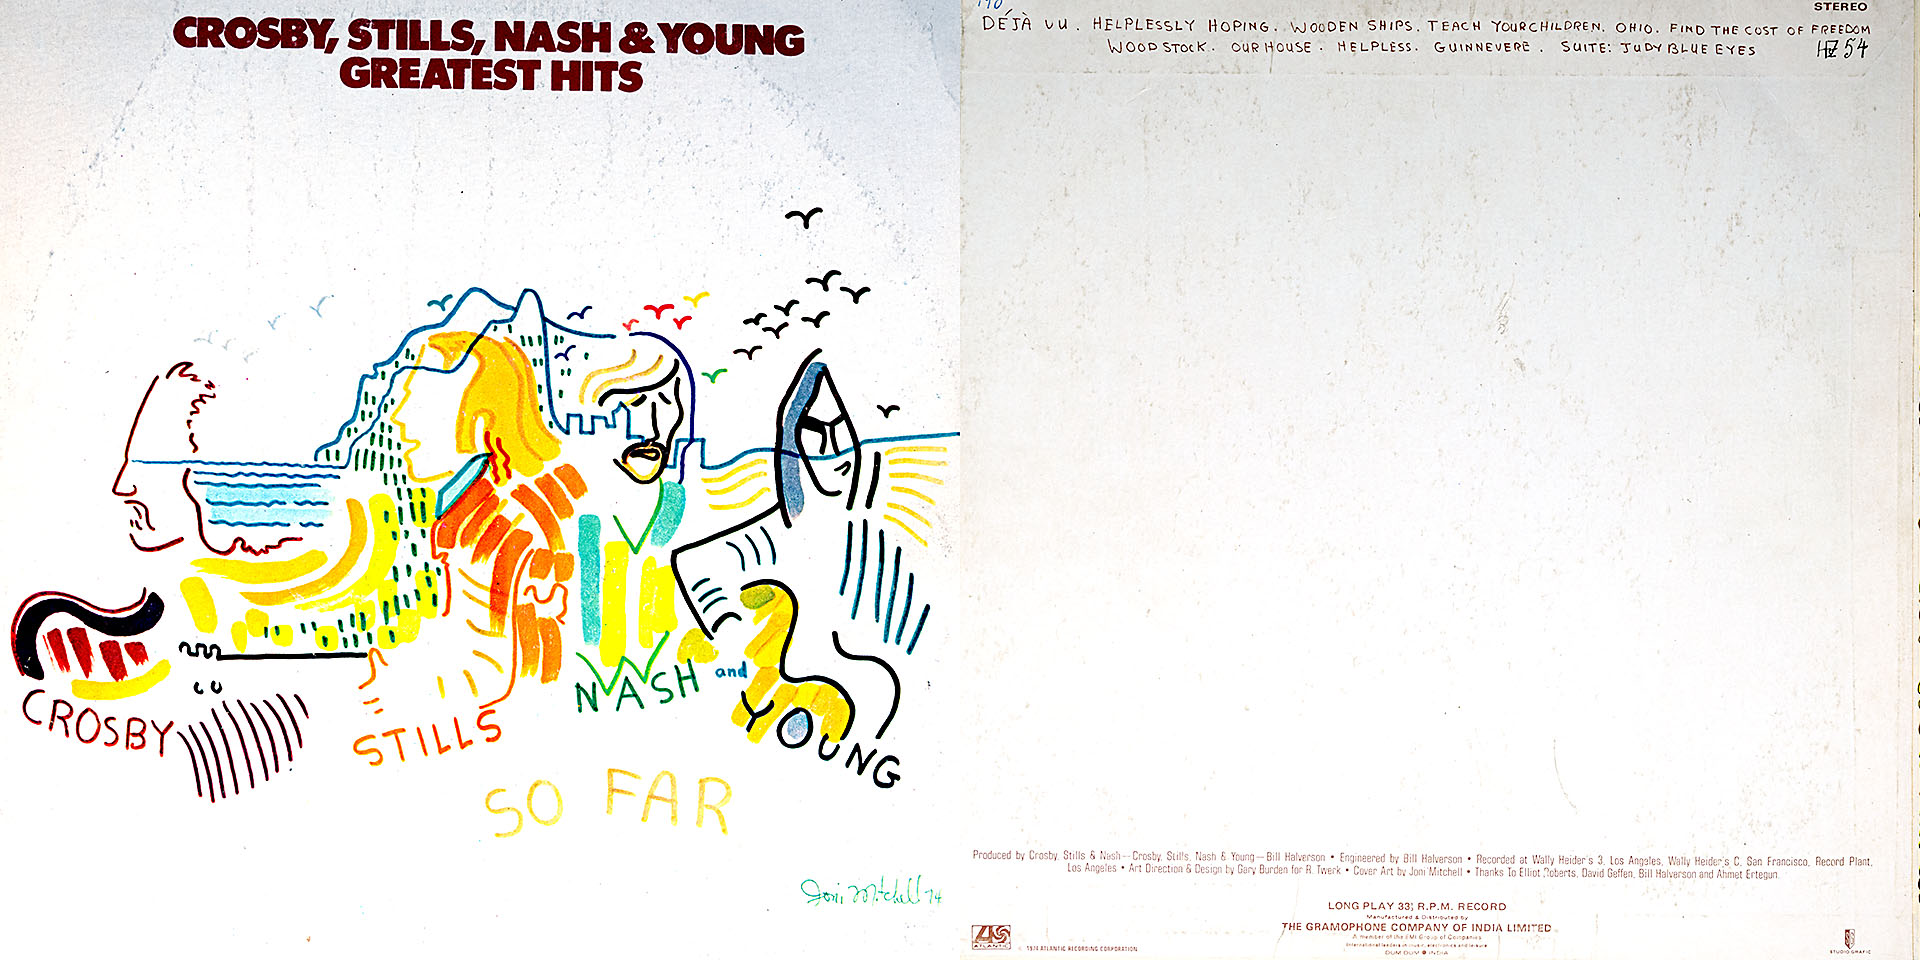 Greatest Hits - Grosby, Stills, Nash & Young - Grosby, Stills, Nash & Young